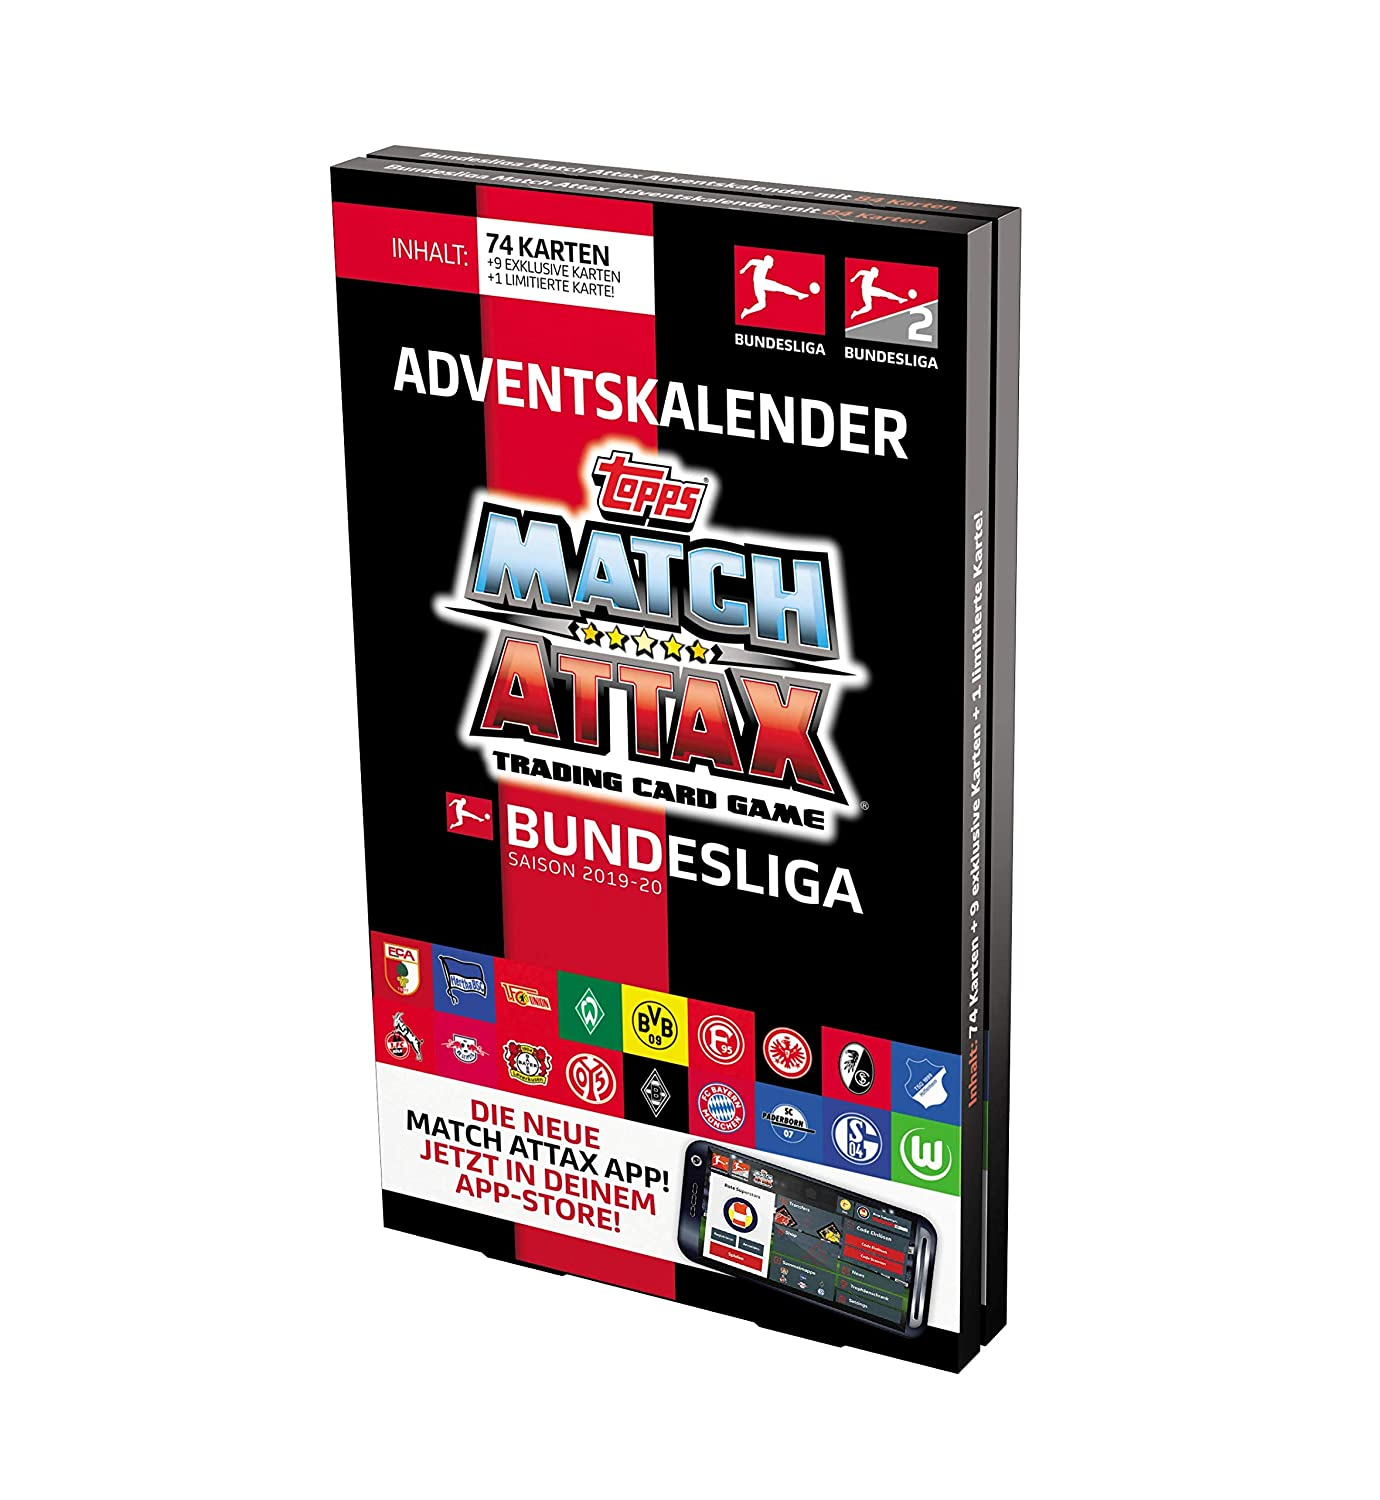 Bundesliga Match Attax 2019 20 Adventskalender Amazon De